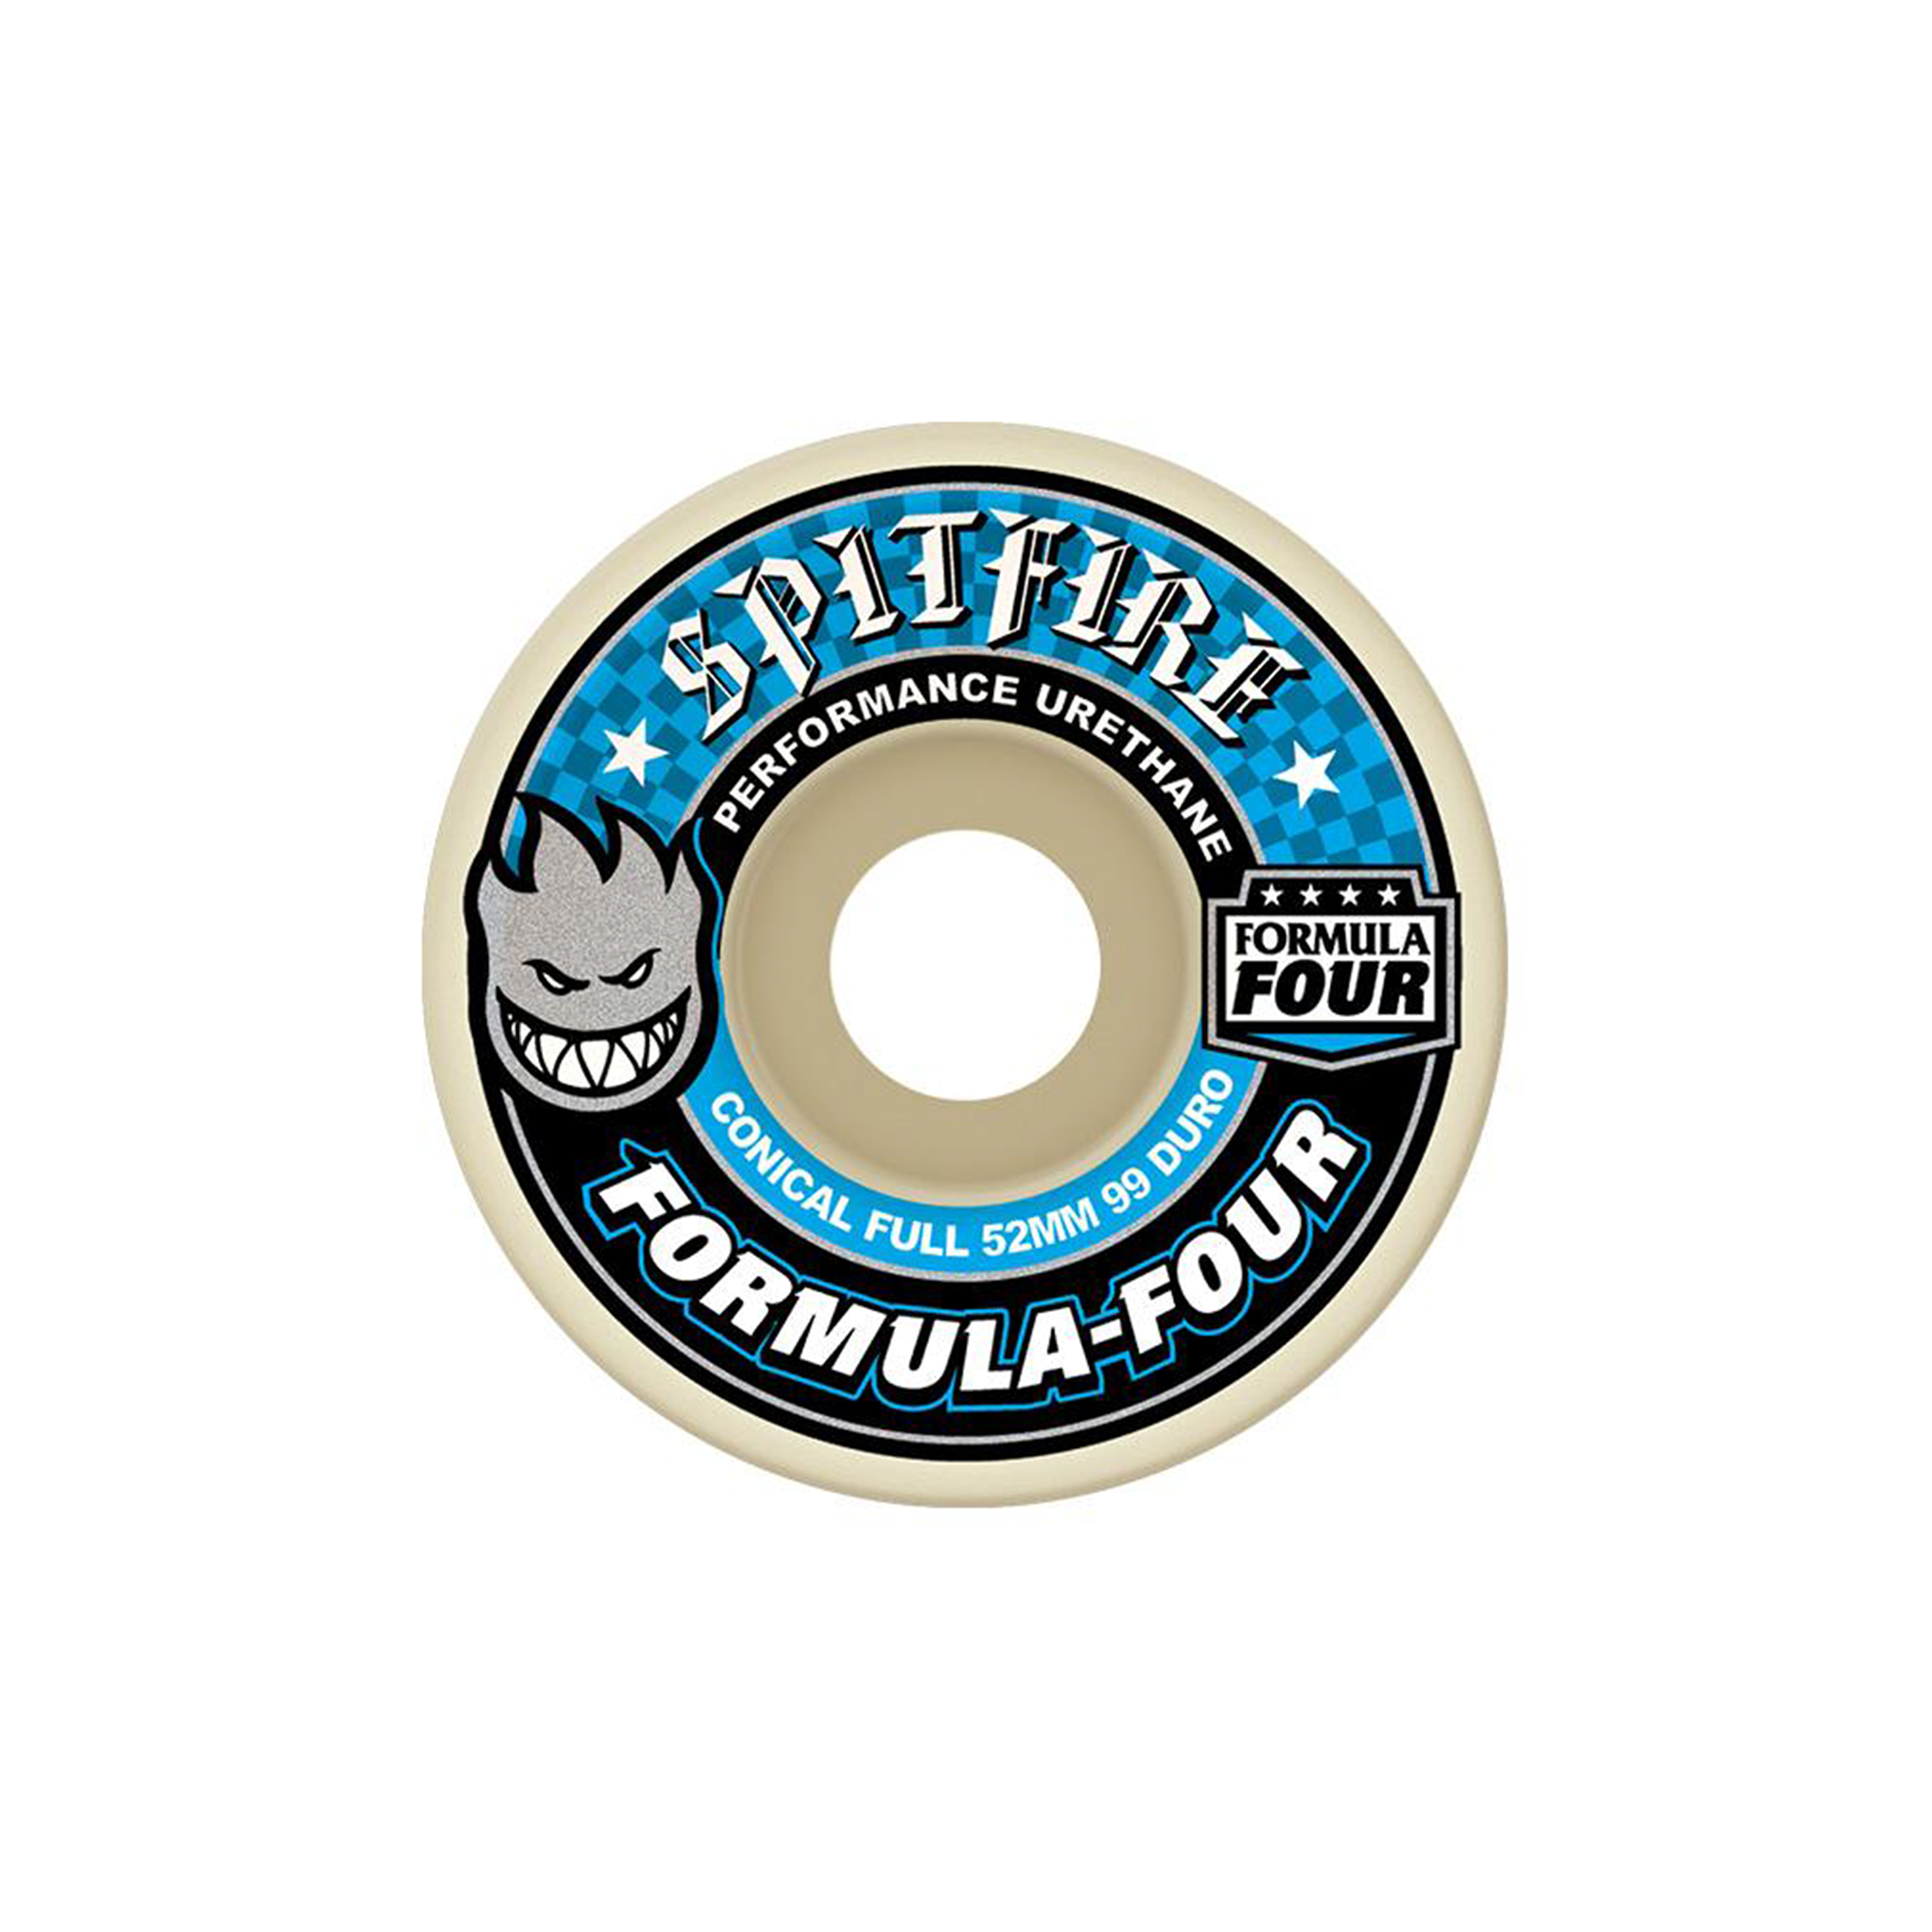 Spitfire Formula Four Conical Full 99 Wheels Product Photo #1